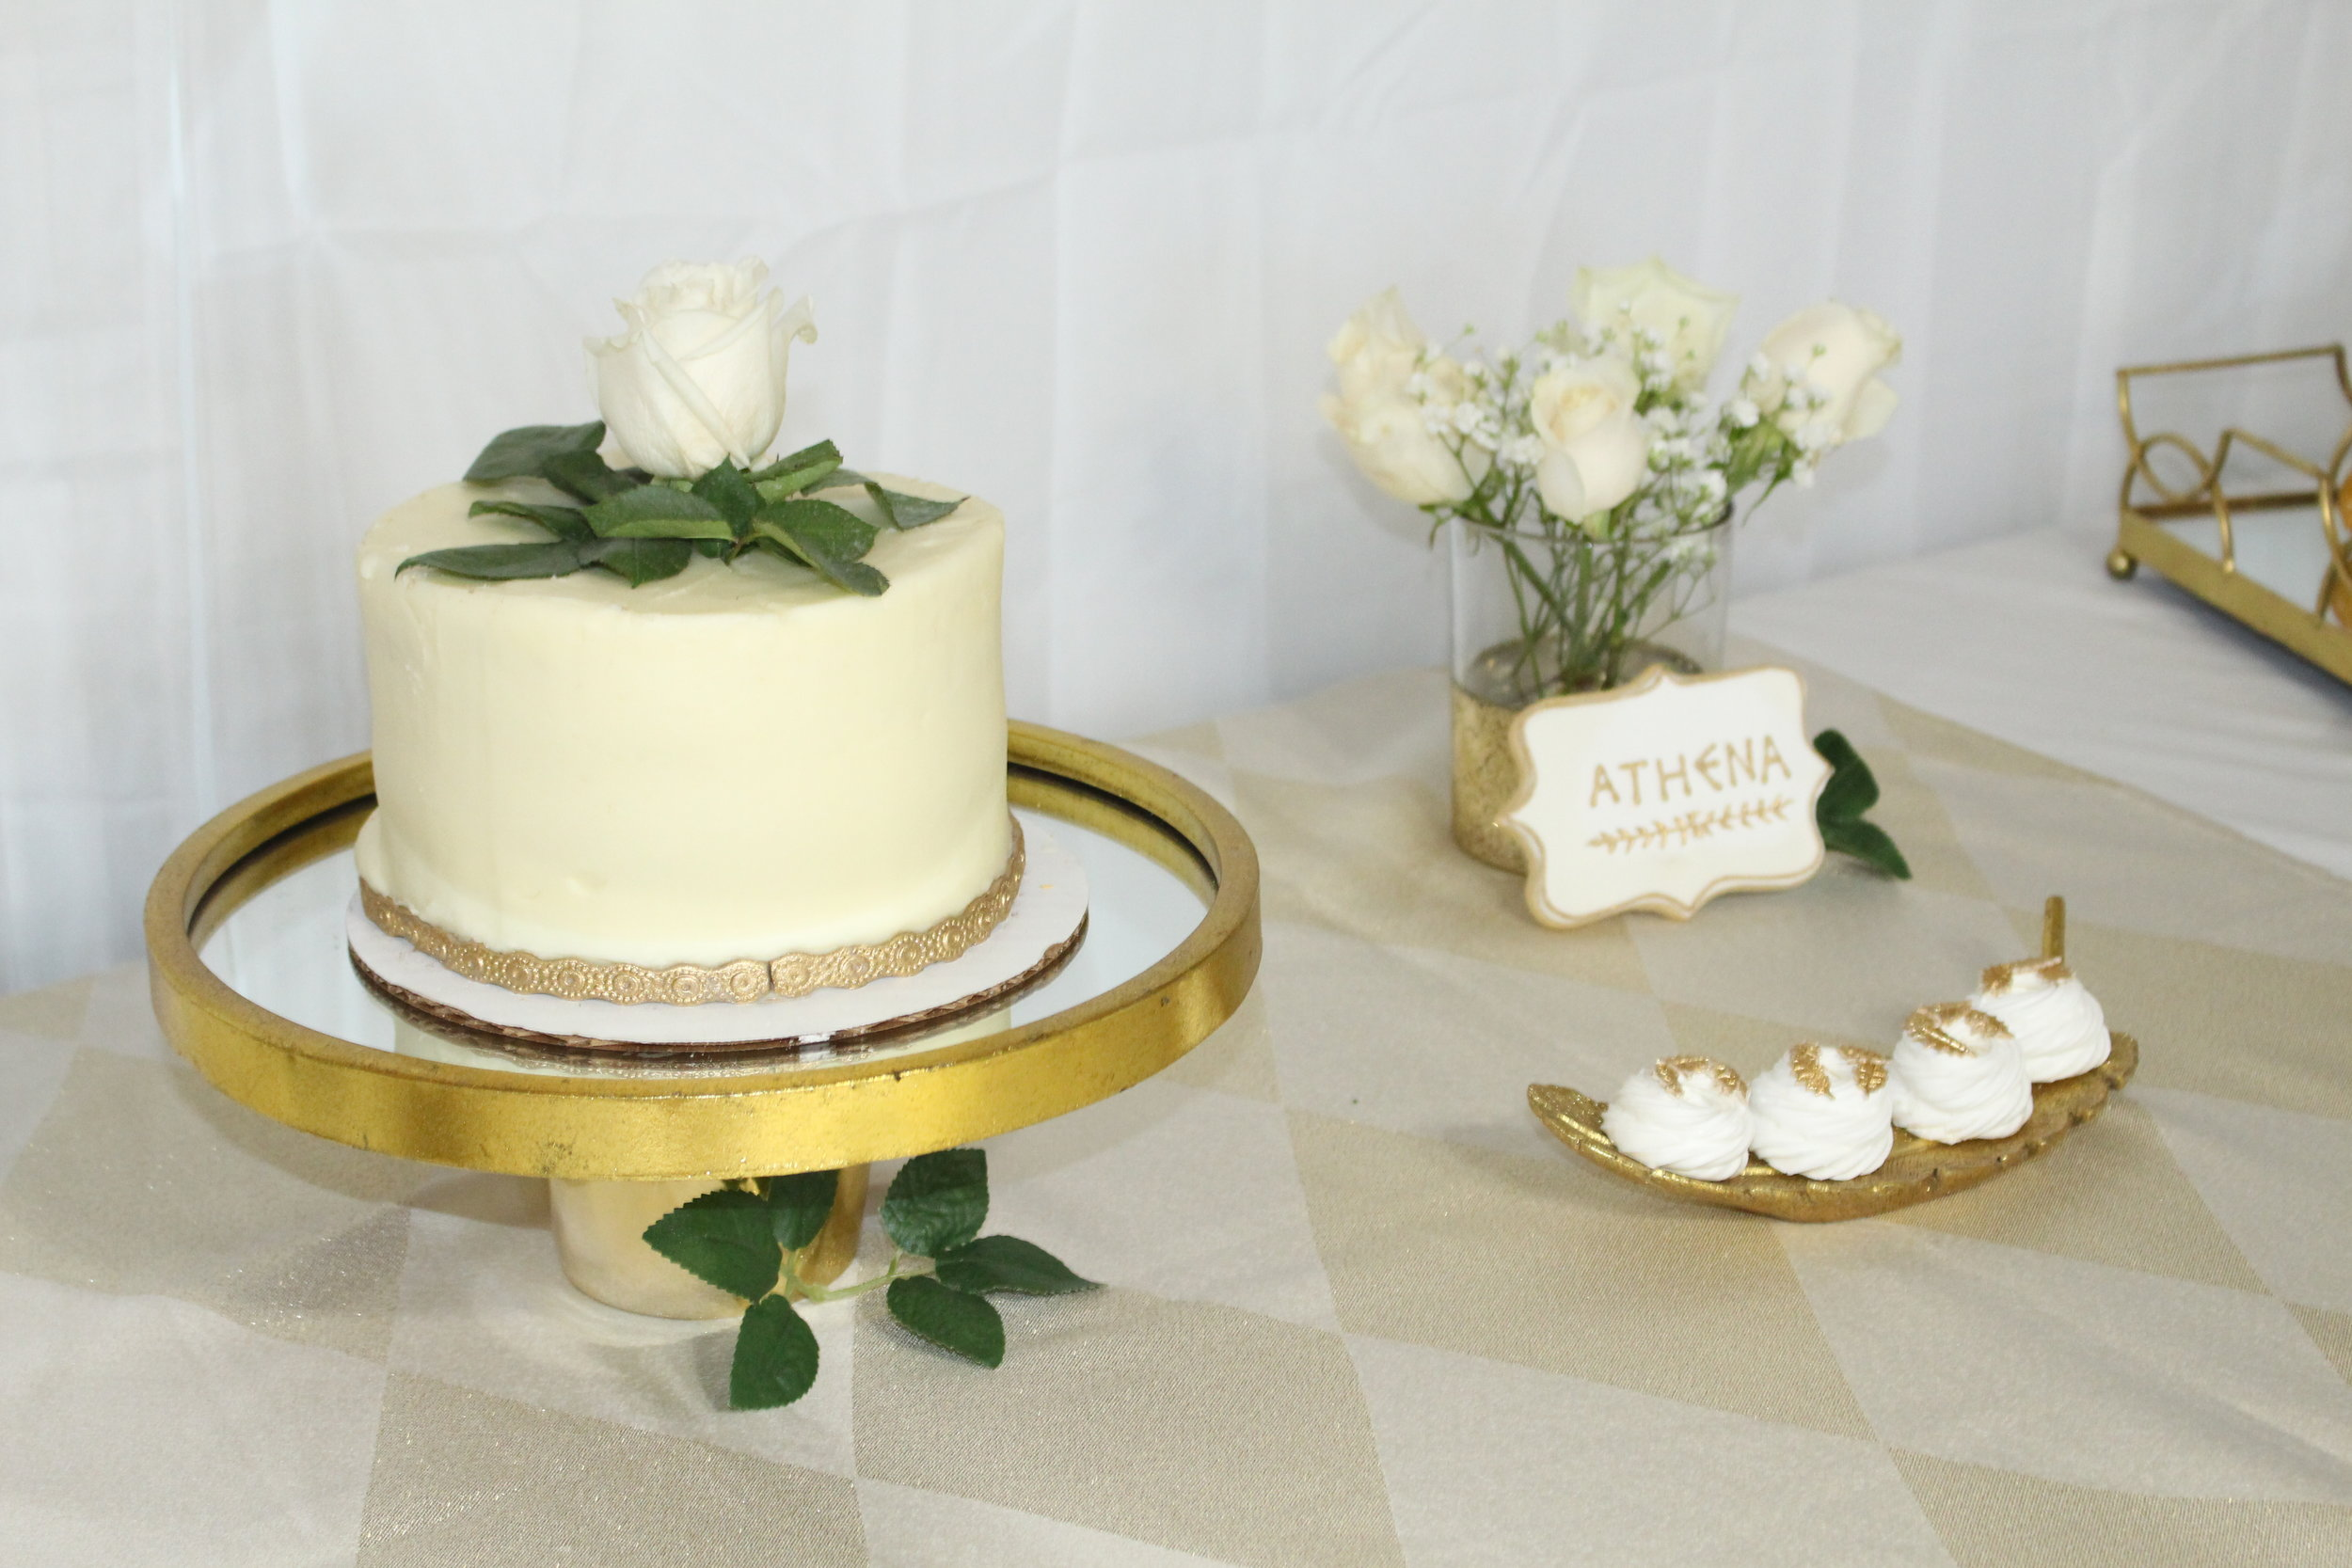 Greek Goddess Theme -